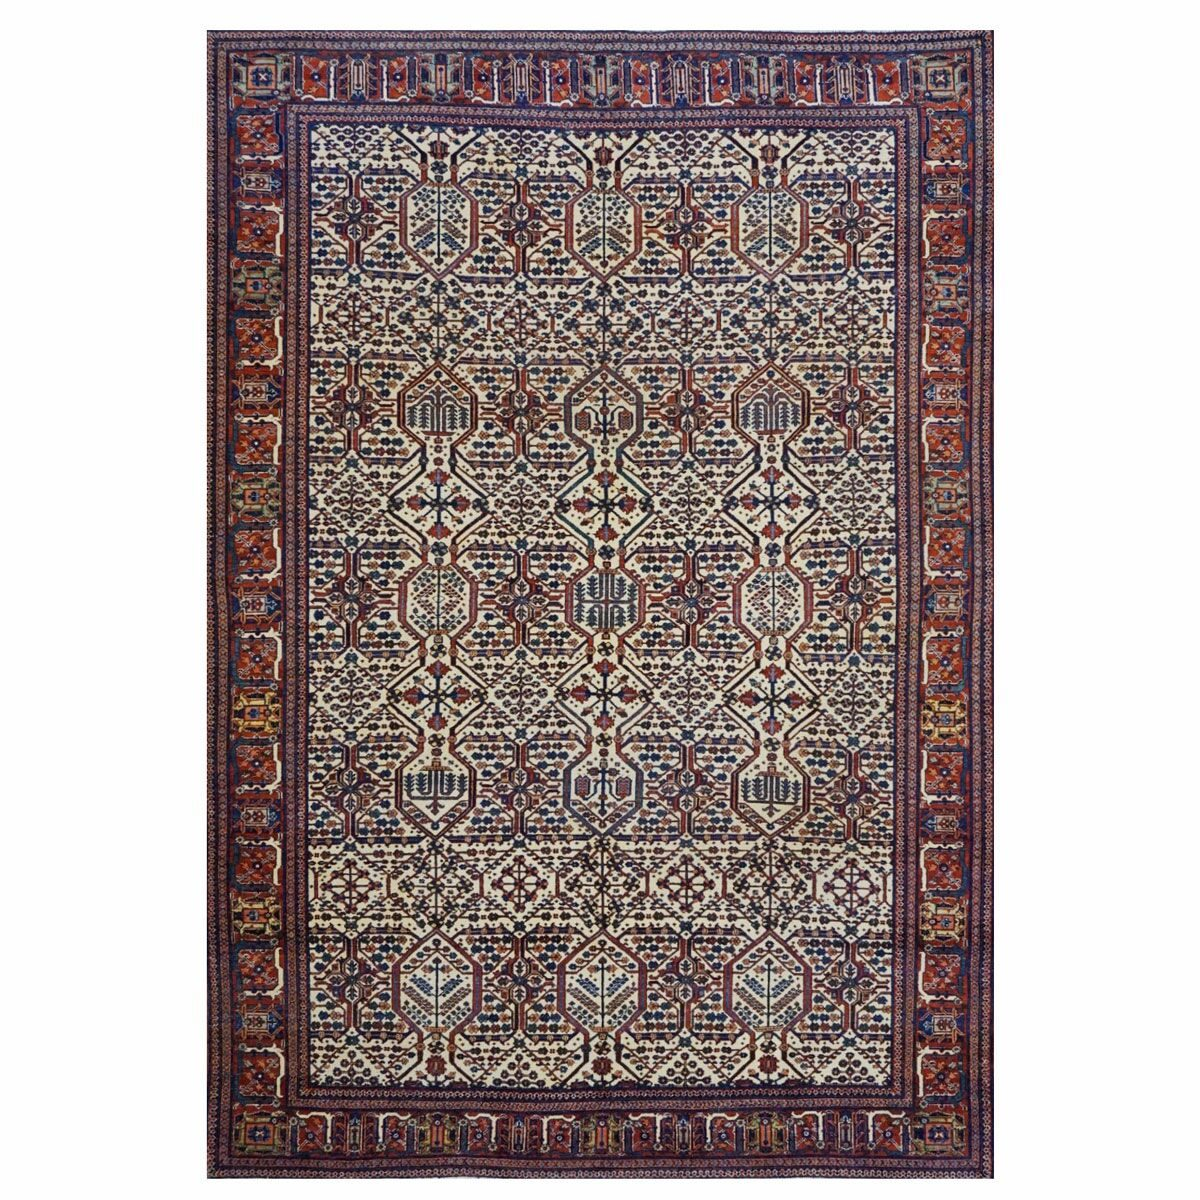 1140490 Joshagan 7 x 10 Persian Rug from Ashly Fine Rugs